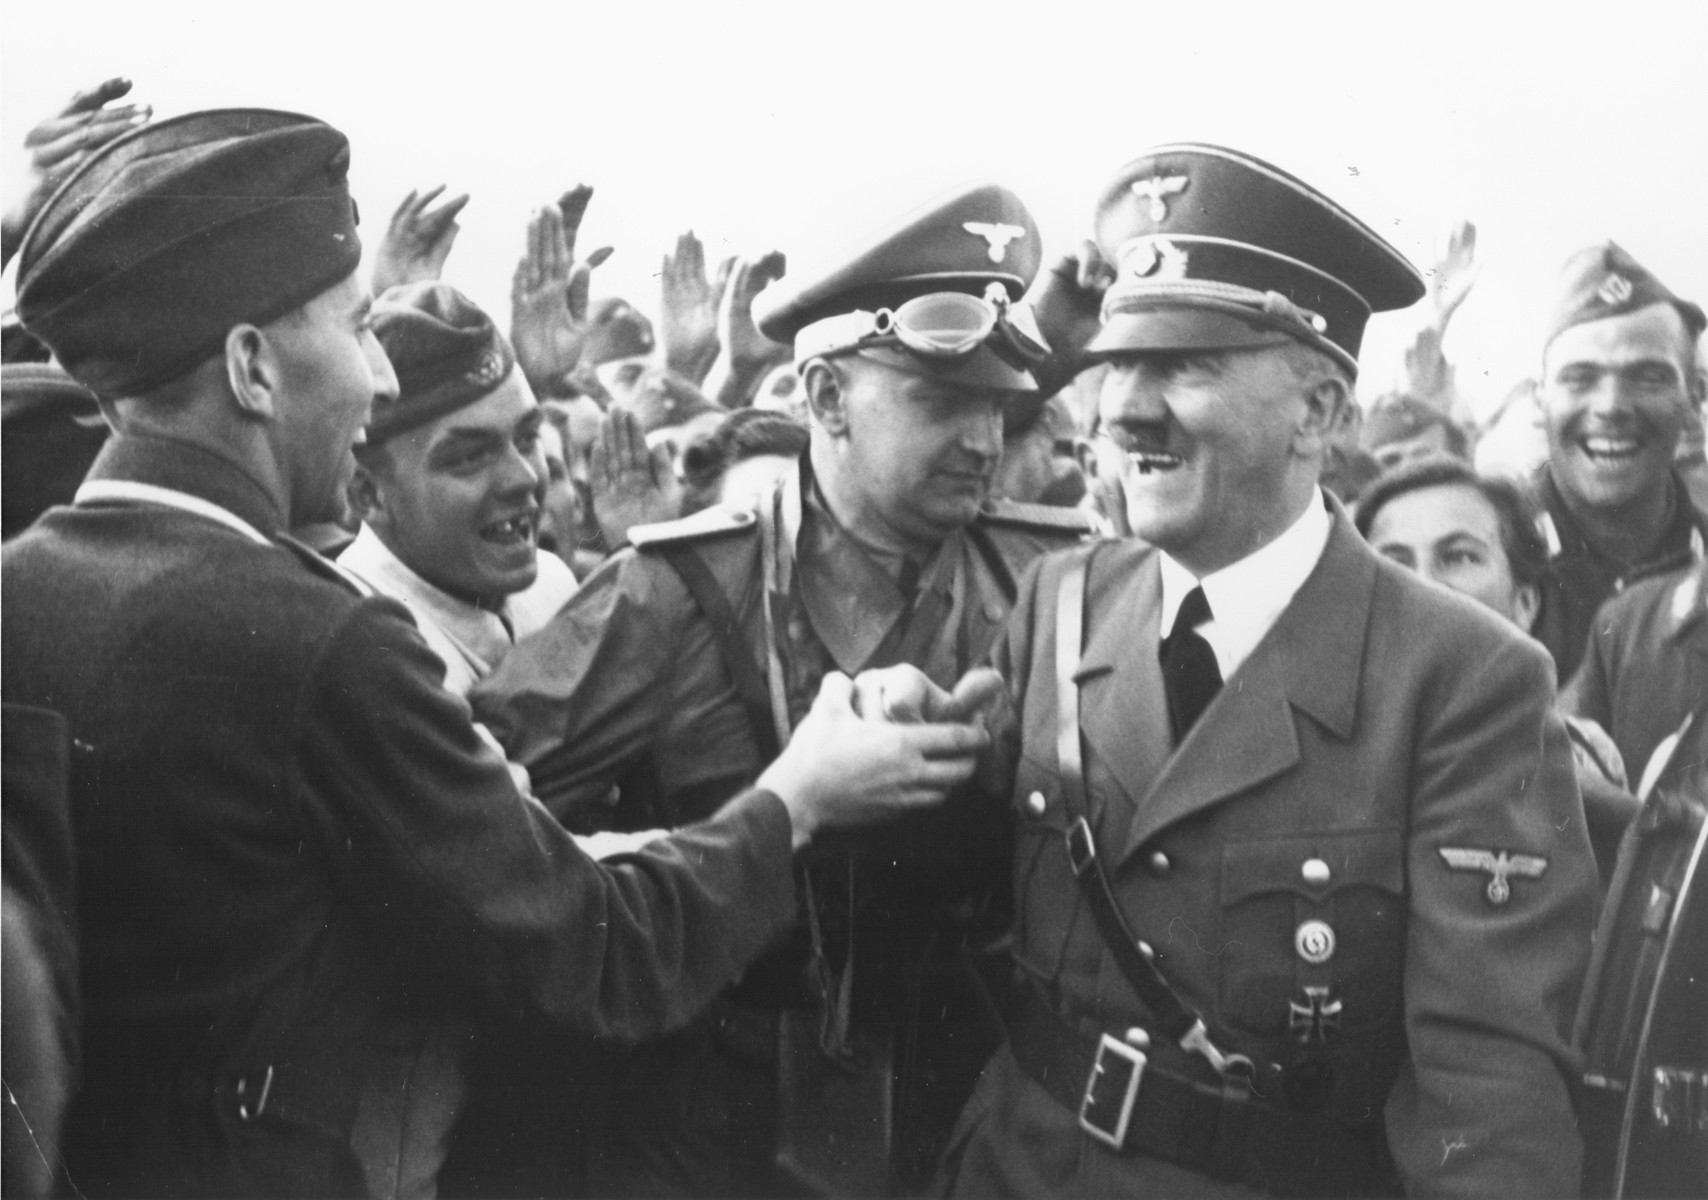 A smiling Adolf Hitler greets a soldier.  Pictured at the center with goggles is Hitler's aide-de-camp Heinz Linge.